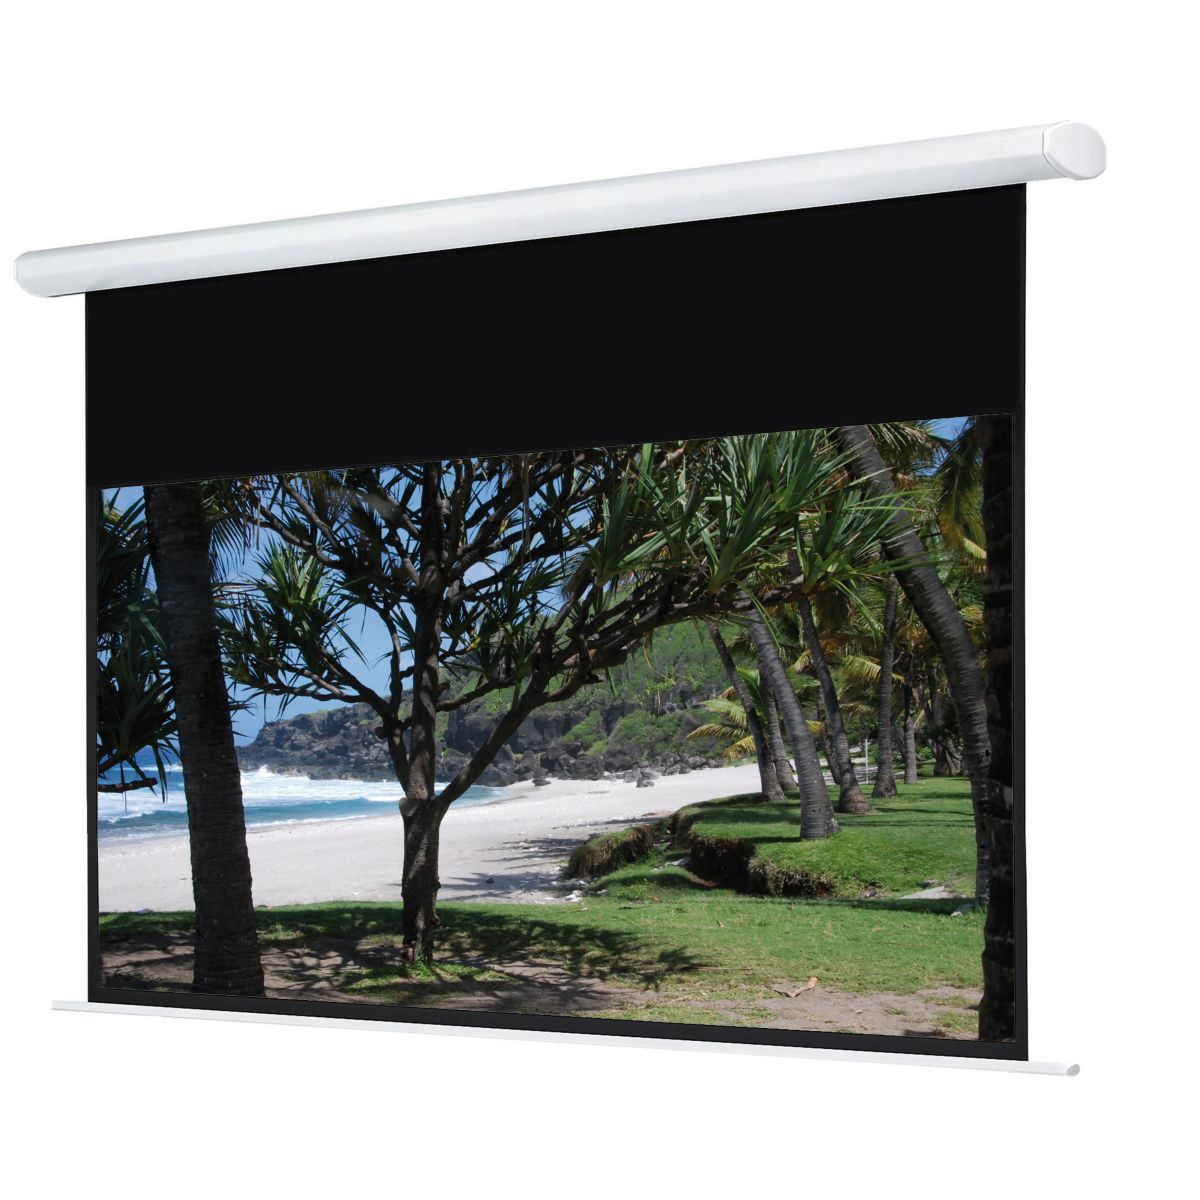 Ecran de projection oray hcm4rb1 101x180 motoris� 16:9 - 20% de remise imm�diate avec le code : deal20 (photo)